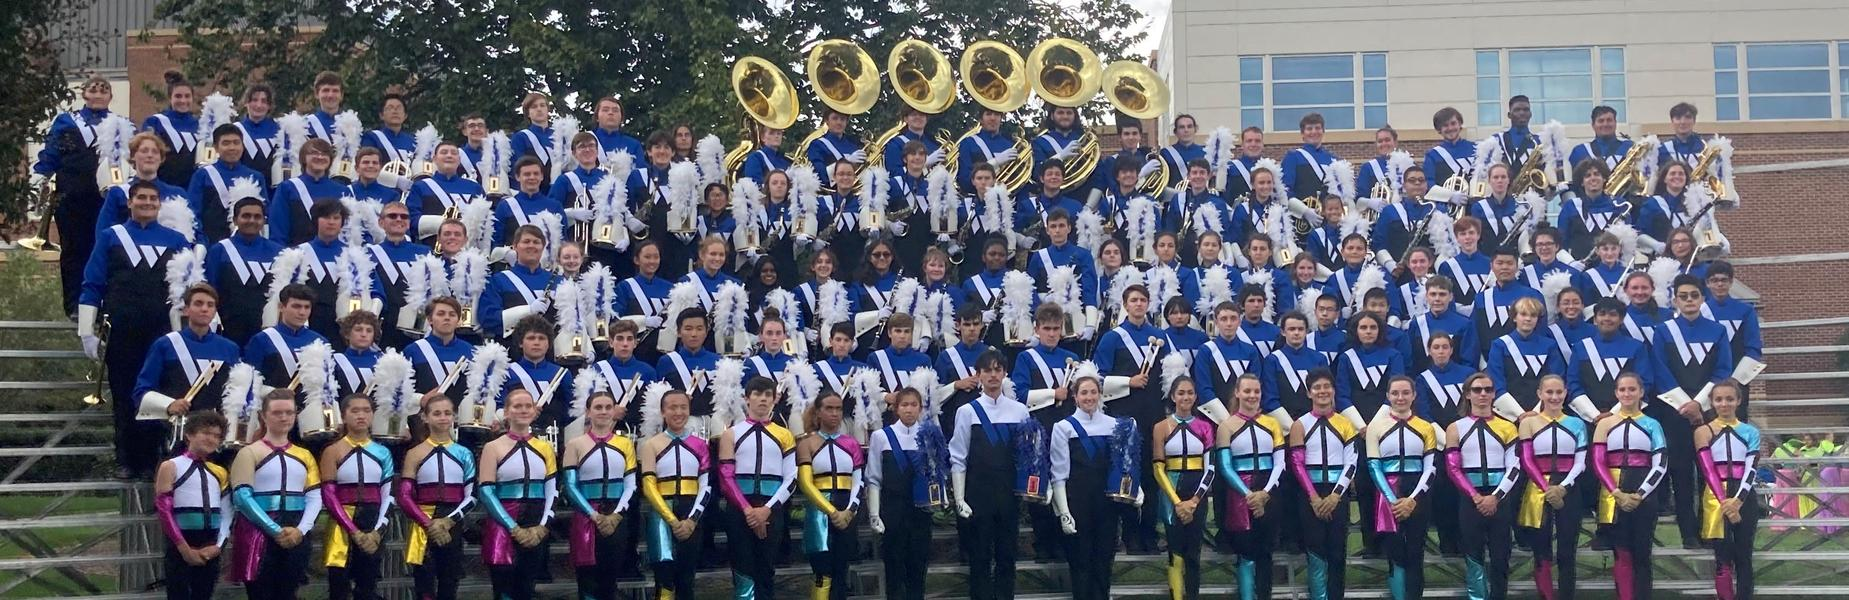 Photo of WHS Marching Band